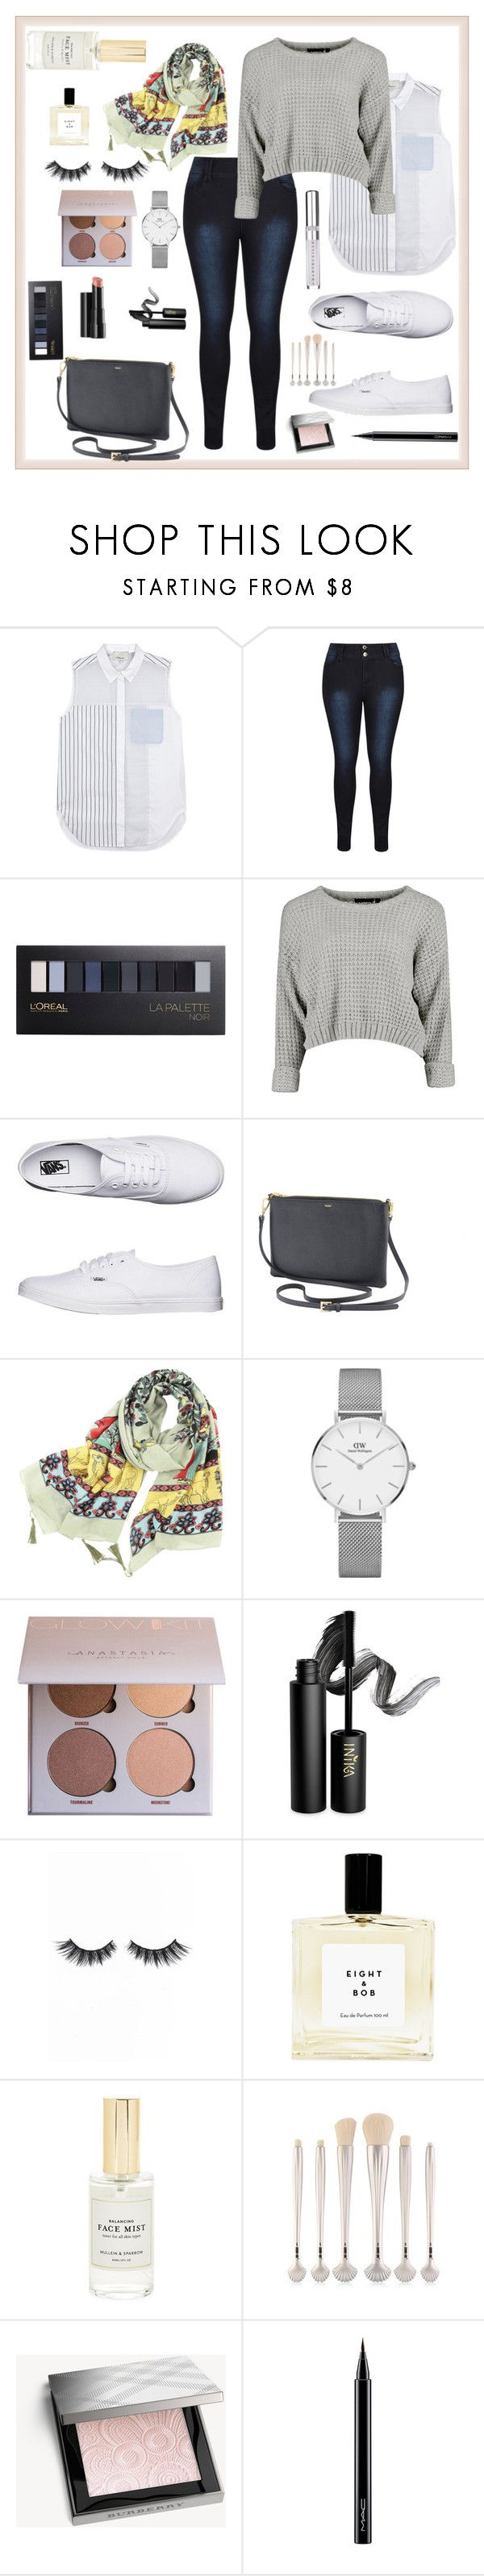 """""""Untitled #18"""" by sarahaaaaa ❤ liked on Polyvore featuring 3.1 Phillip Lim, L'Oréal Paris, Vans, Daniel Wellington, INIKA, Arbonne, Violet Voss, Mullein & Sparrow, Burberry and MAC Cosmetics"""